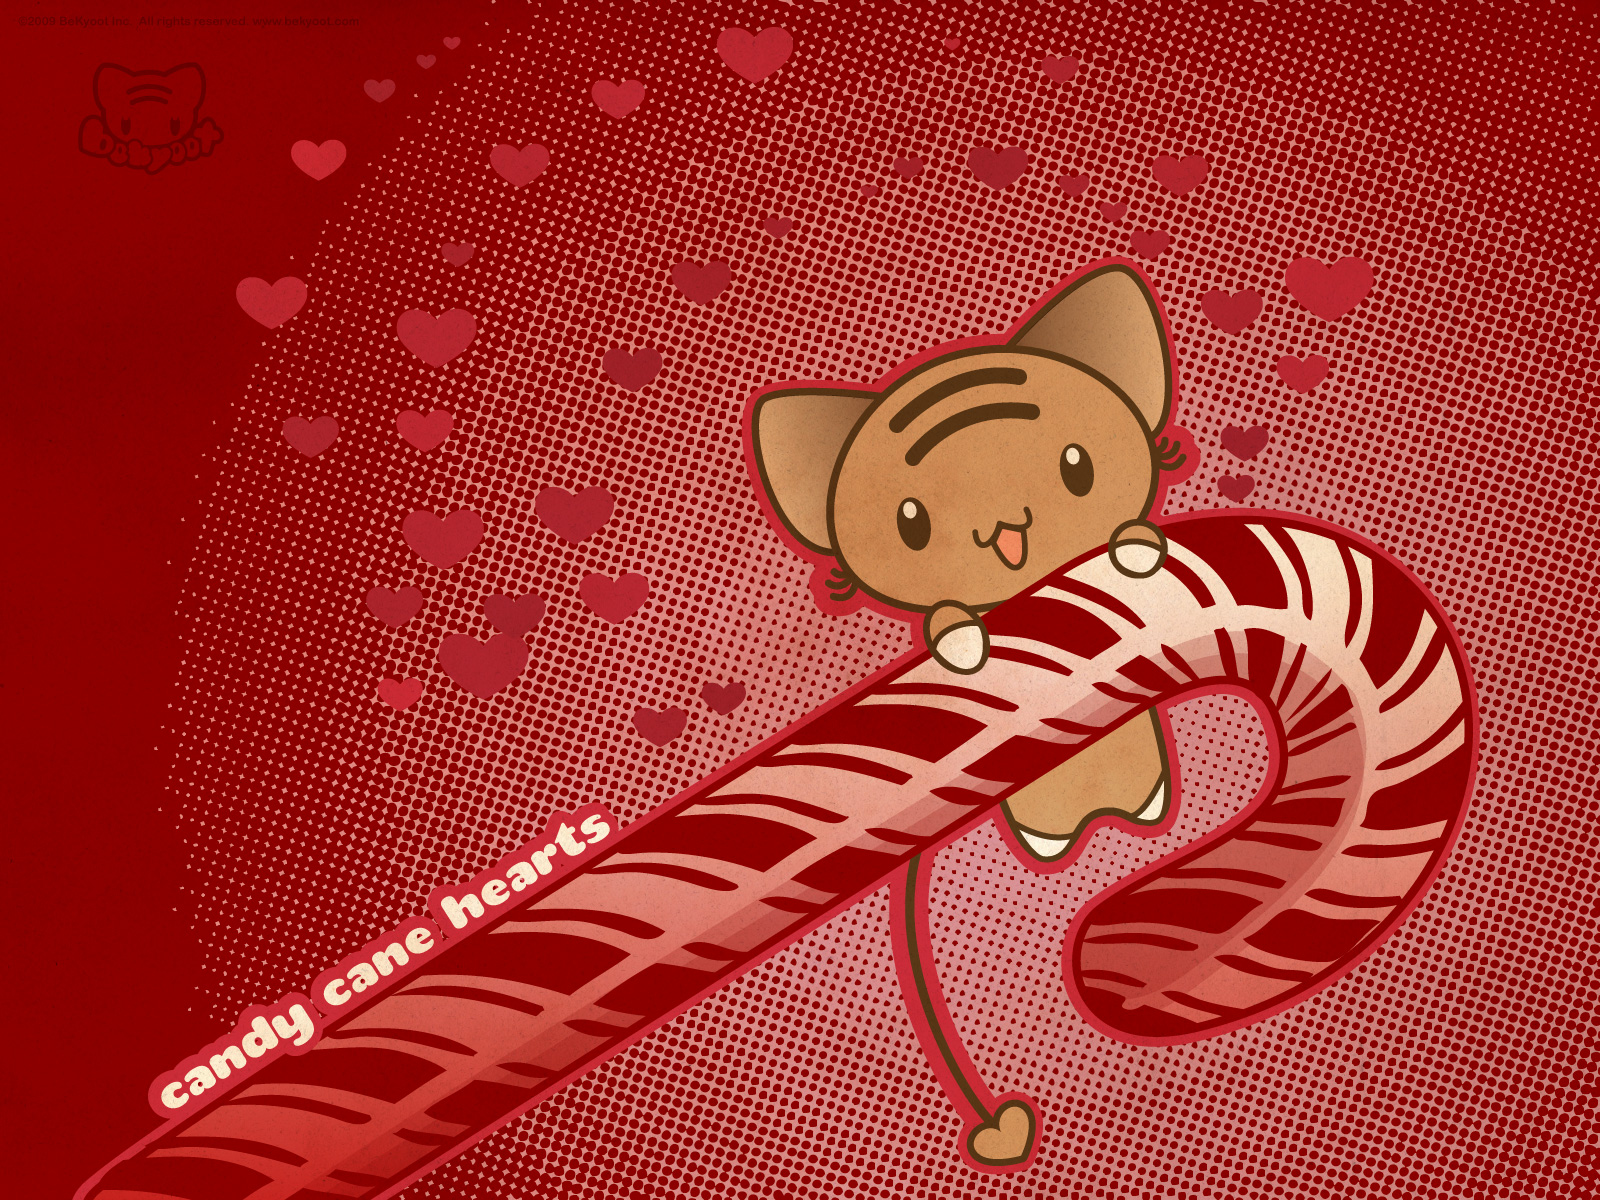 Candy Canes Images Cane Cat HD Wallpaper And Background Photos